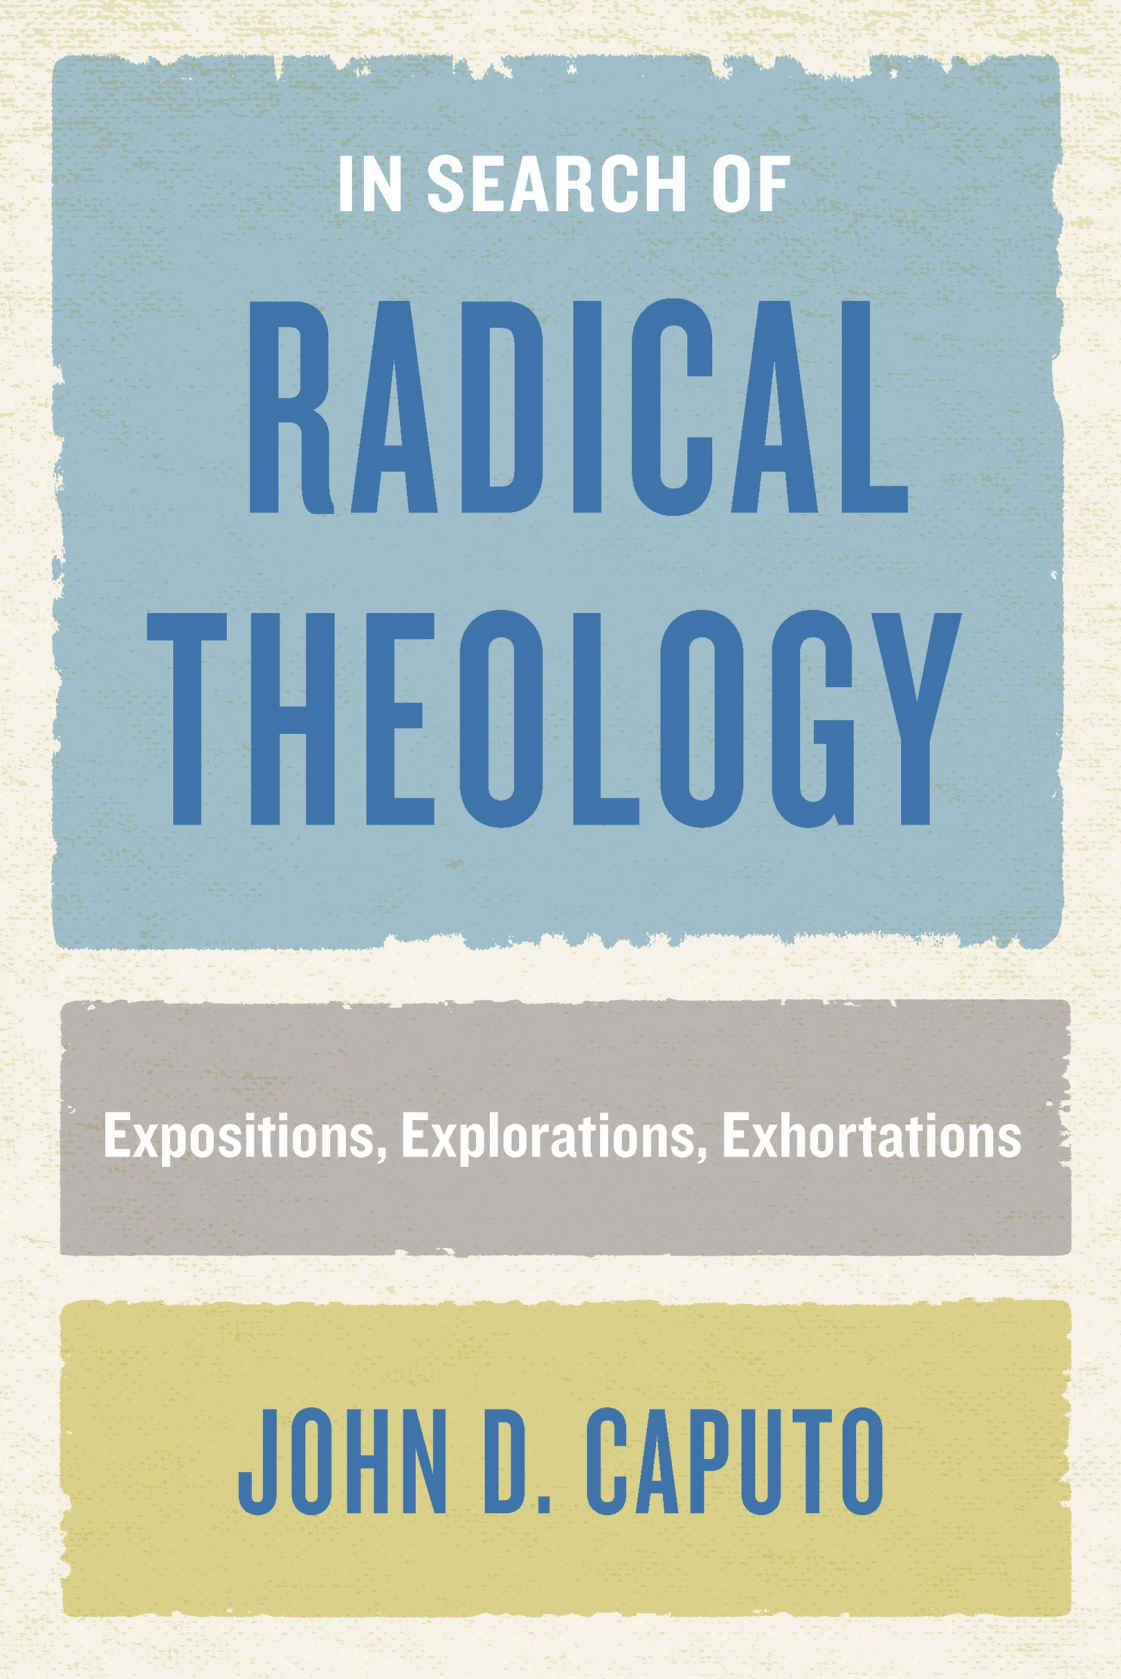 In Search of Radical Theology: Expositions, Explorations, Exhortations